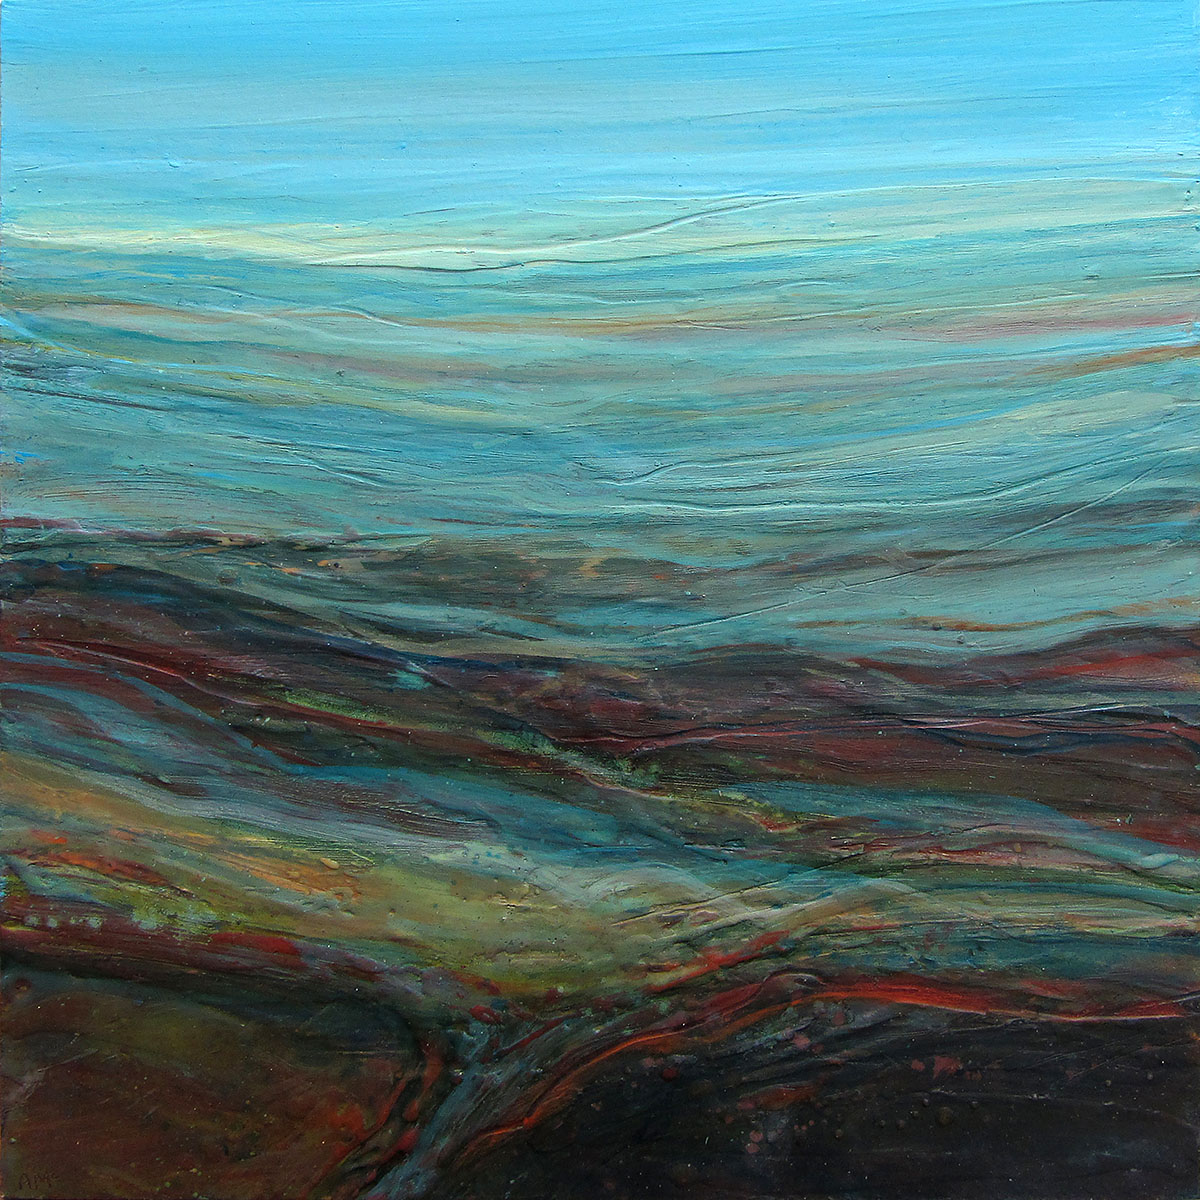 Alison McGill, 'Across the Land', oil and wax on board